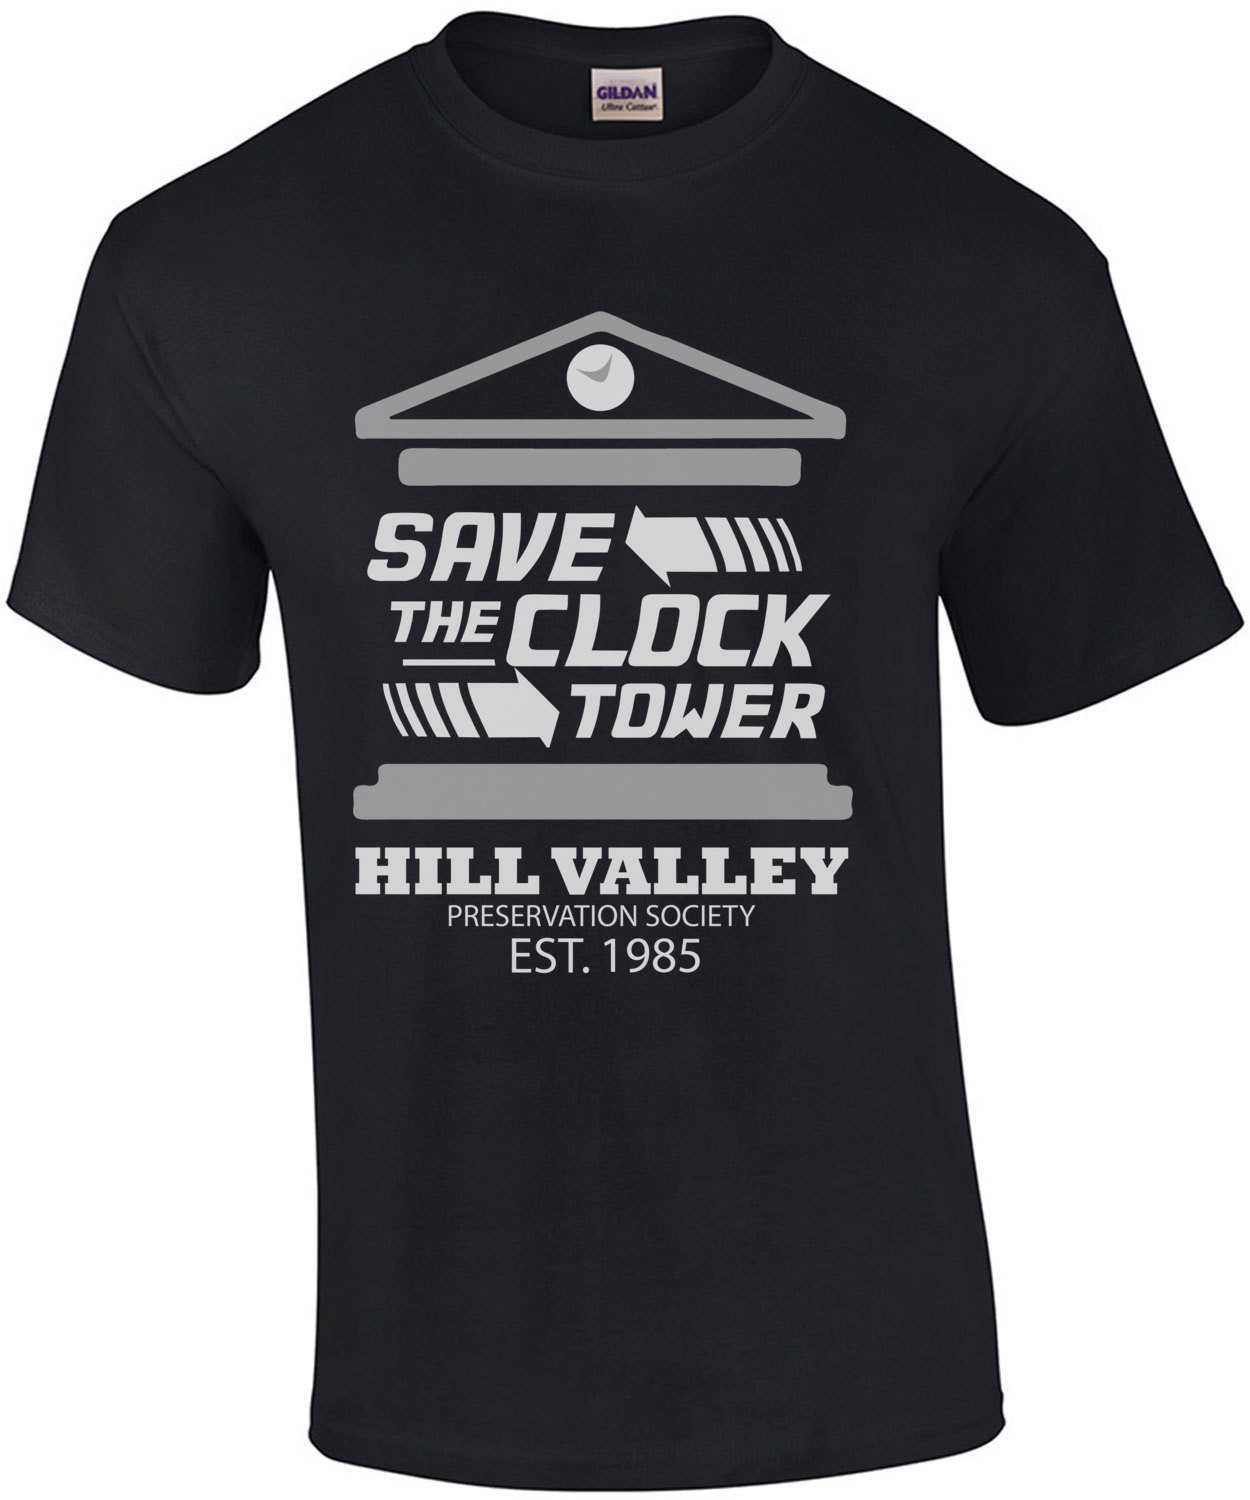 Save the clock tower - Hill Valley - Back to the future t-shirt